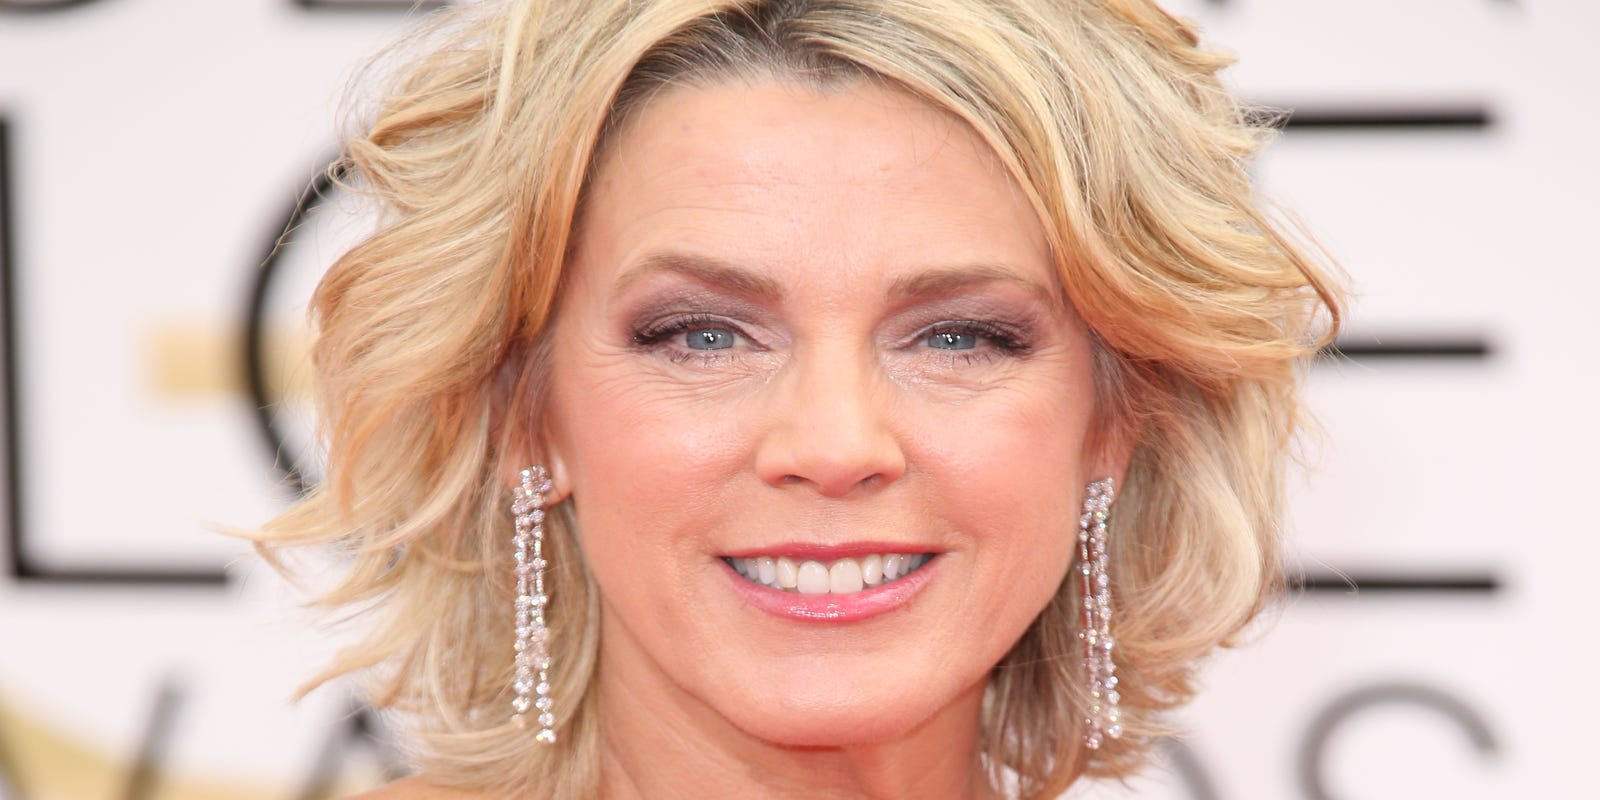 Thyroid Cancer How To Spot It After Deborah Norville Shares Diagnosis